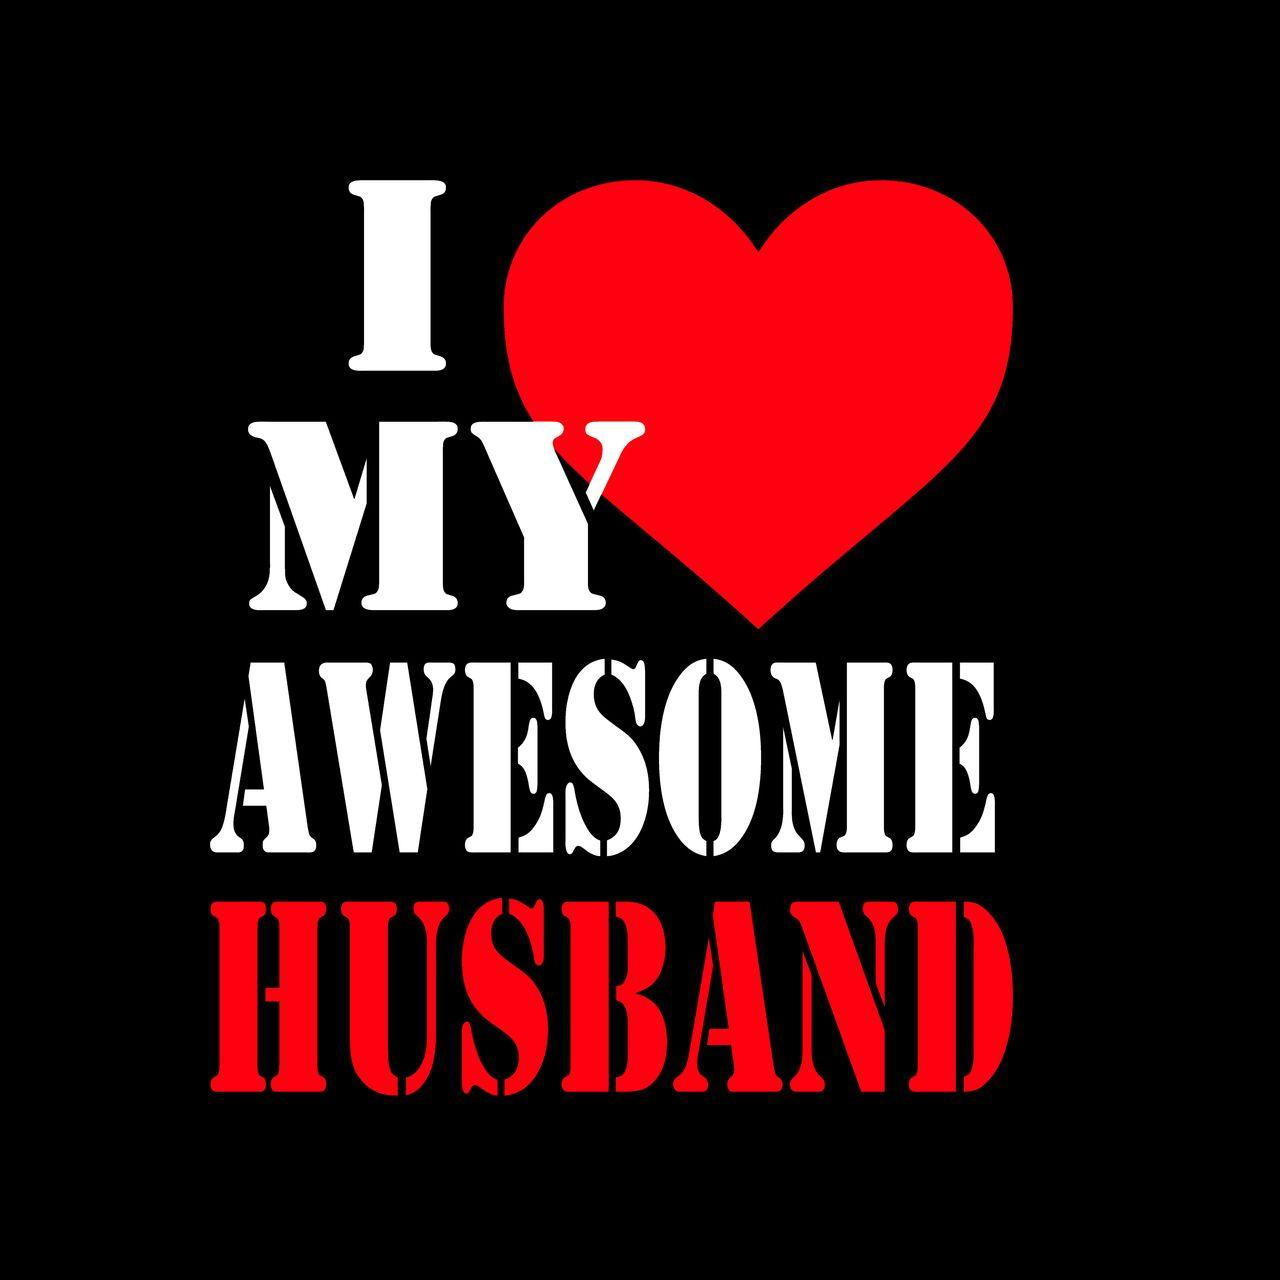 I Love My Husband Wallpapers - Wallpaper Cave